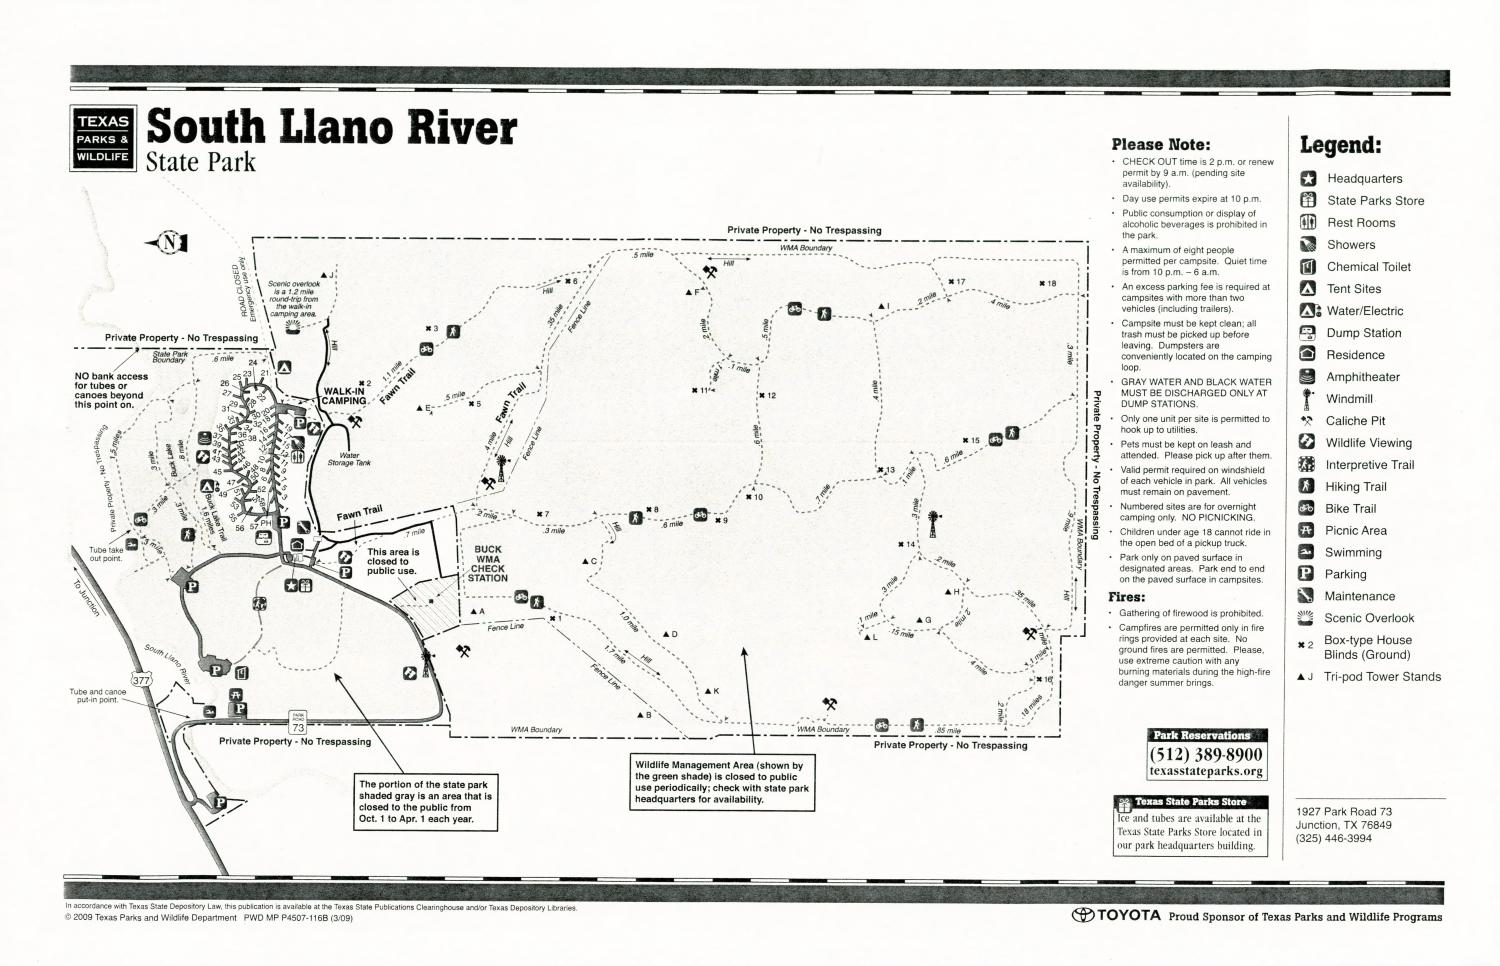 South Llano River State Park, Map of the South Llano River State Park outlining hiking trails and highlighting activities, facilities, and other features such as bathrooms, lodgings, water/electric, etc. It also contains general information for the park and for the Texas Parks and Wildlife Department. Additionally, there are various advertisements, including one with information about the Texas State Parks Pass.,